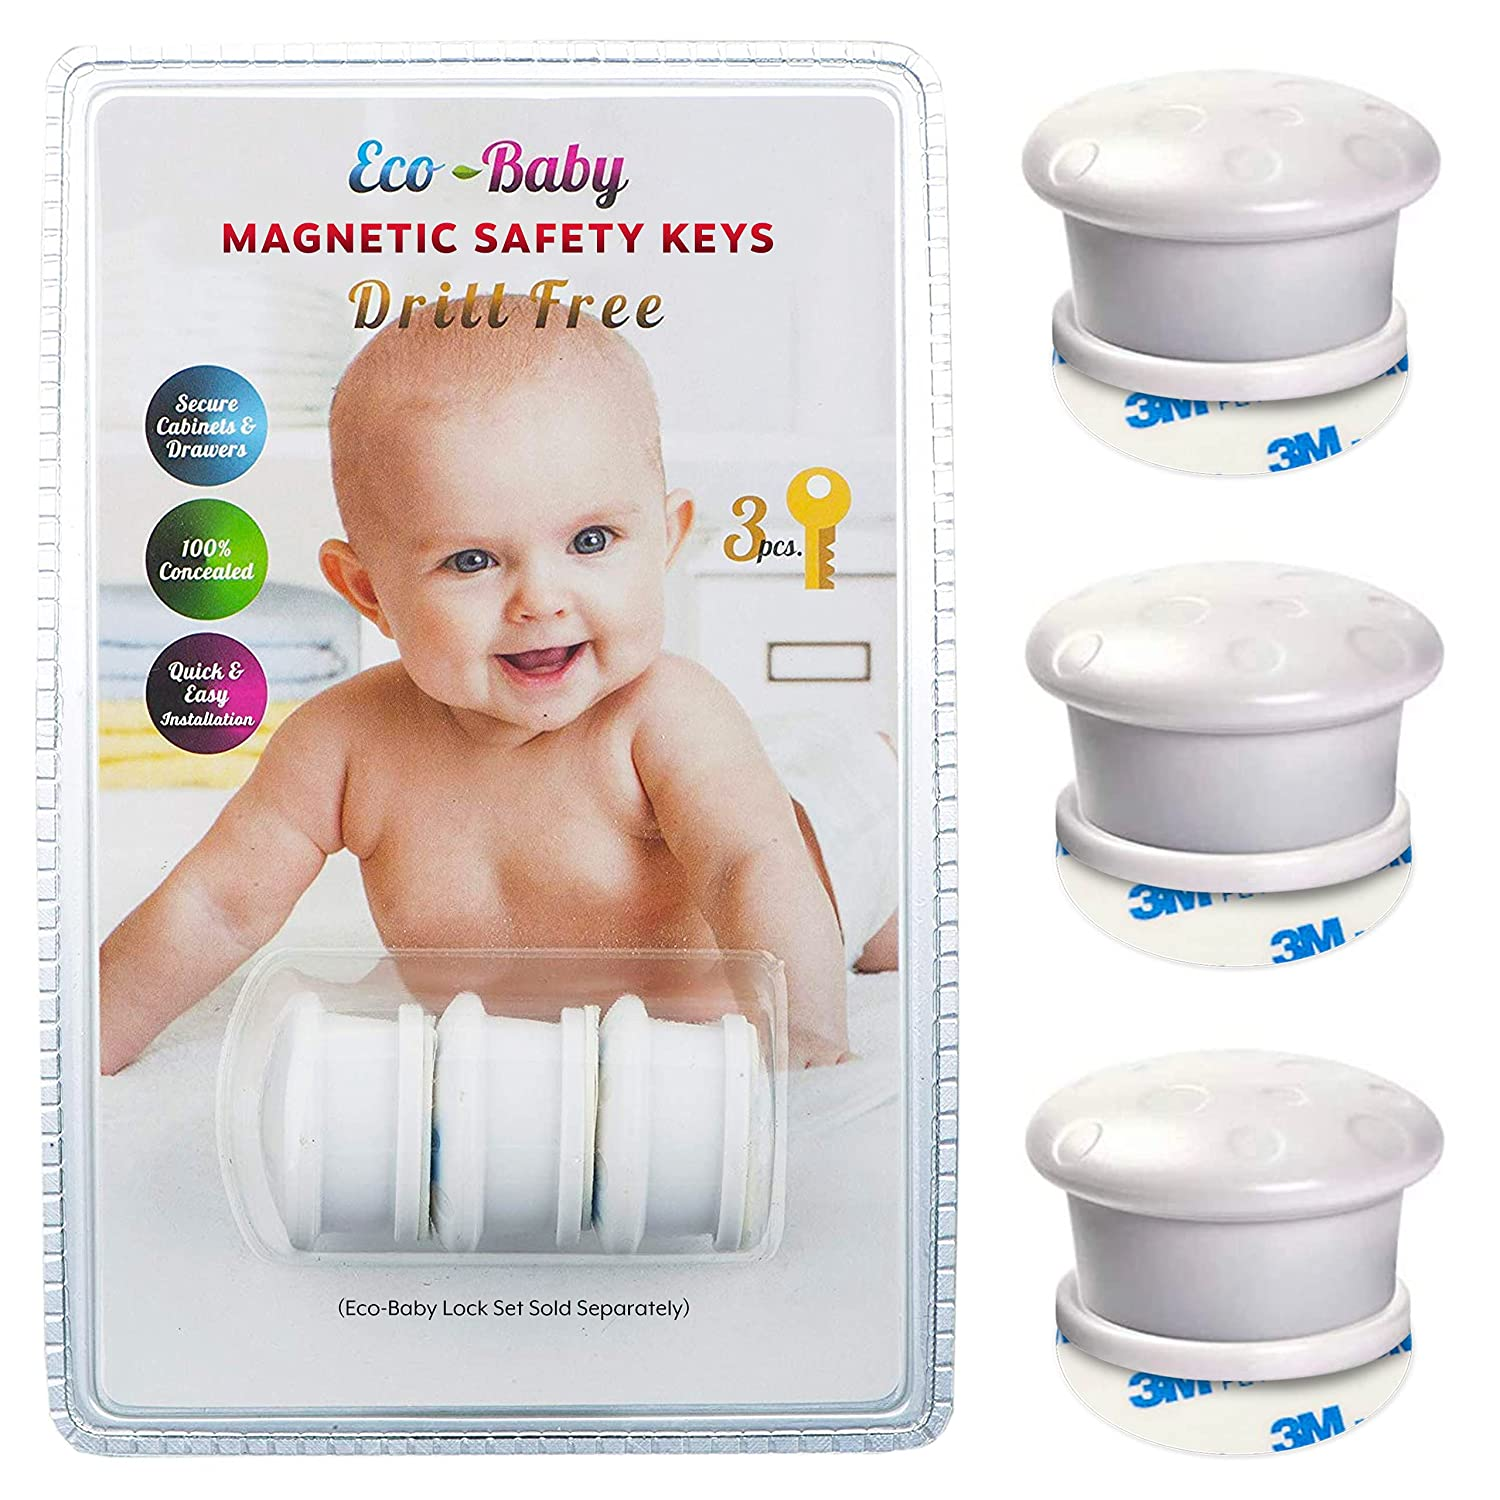 Universal Replacement Keys for Magnetic Cabinet Locks Child Safety for Drawers and Cabinets - Child Proof Cabinet Locks (3 Keys Only) by Eco-Baby